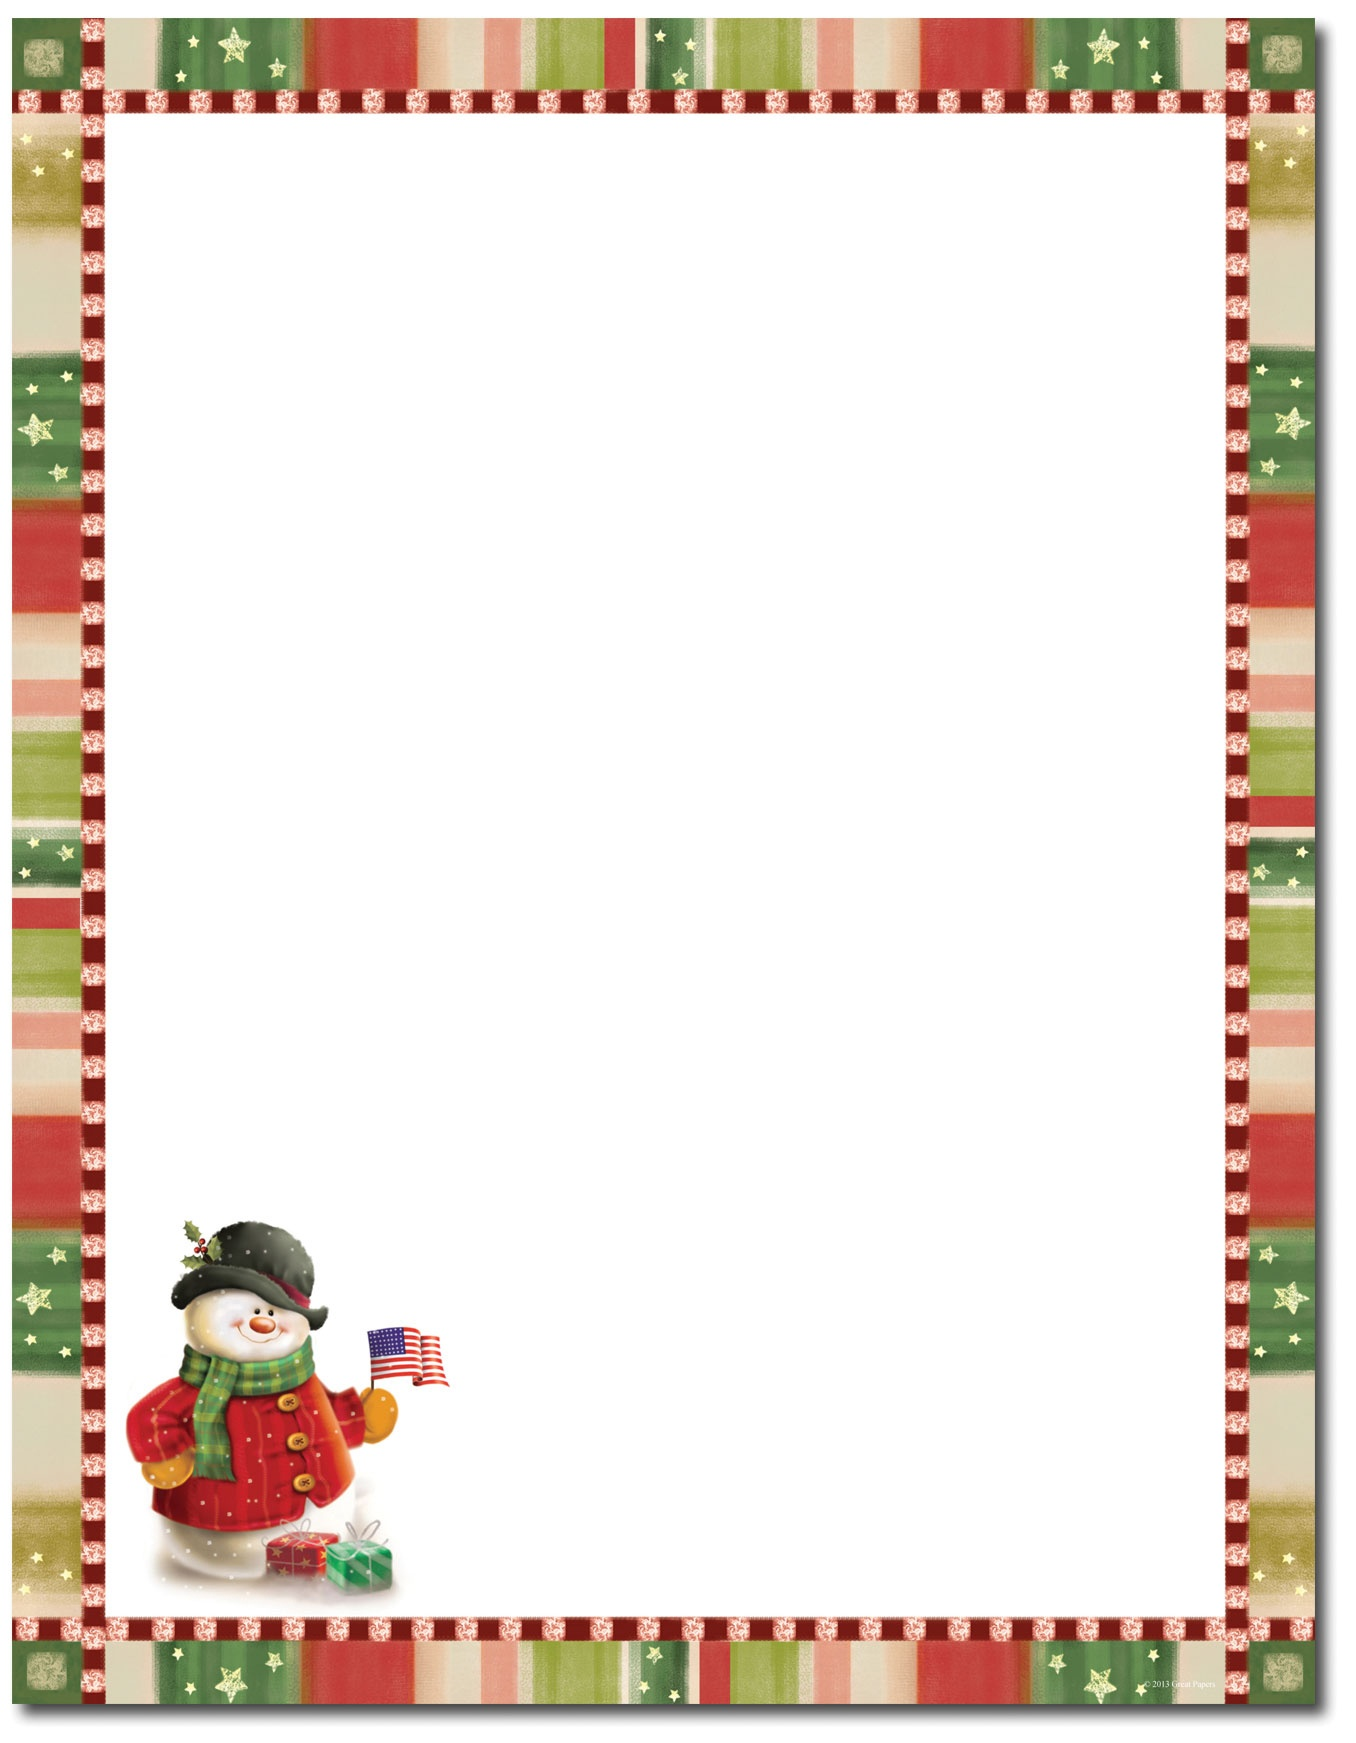 Free Christmas Stationary Cliparts, Download Free Clip Art, Free - Free Printable Christmas Stationary